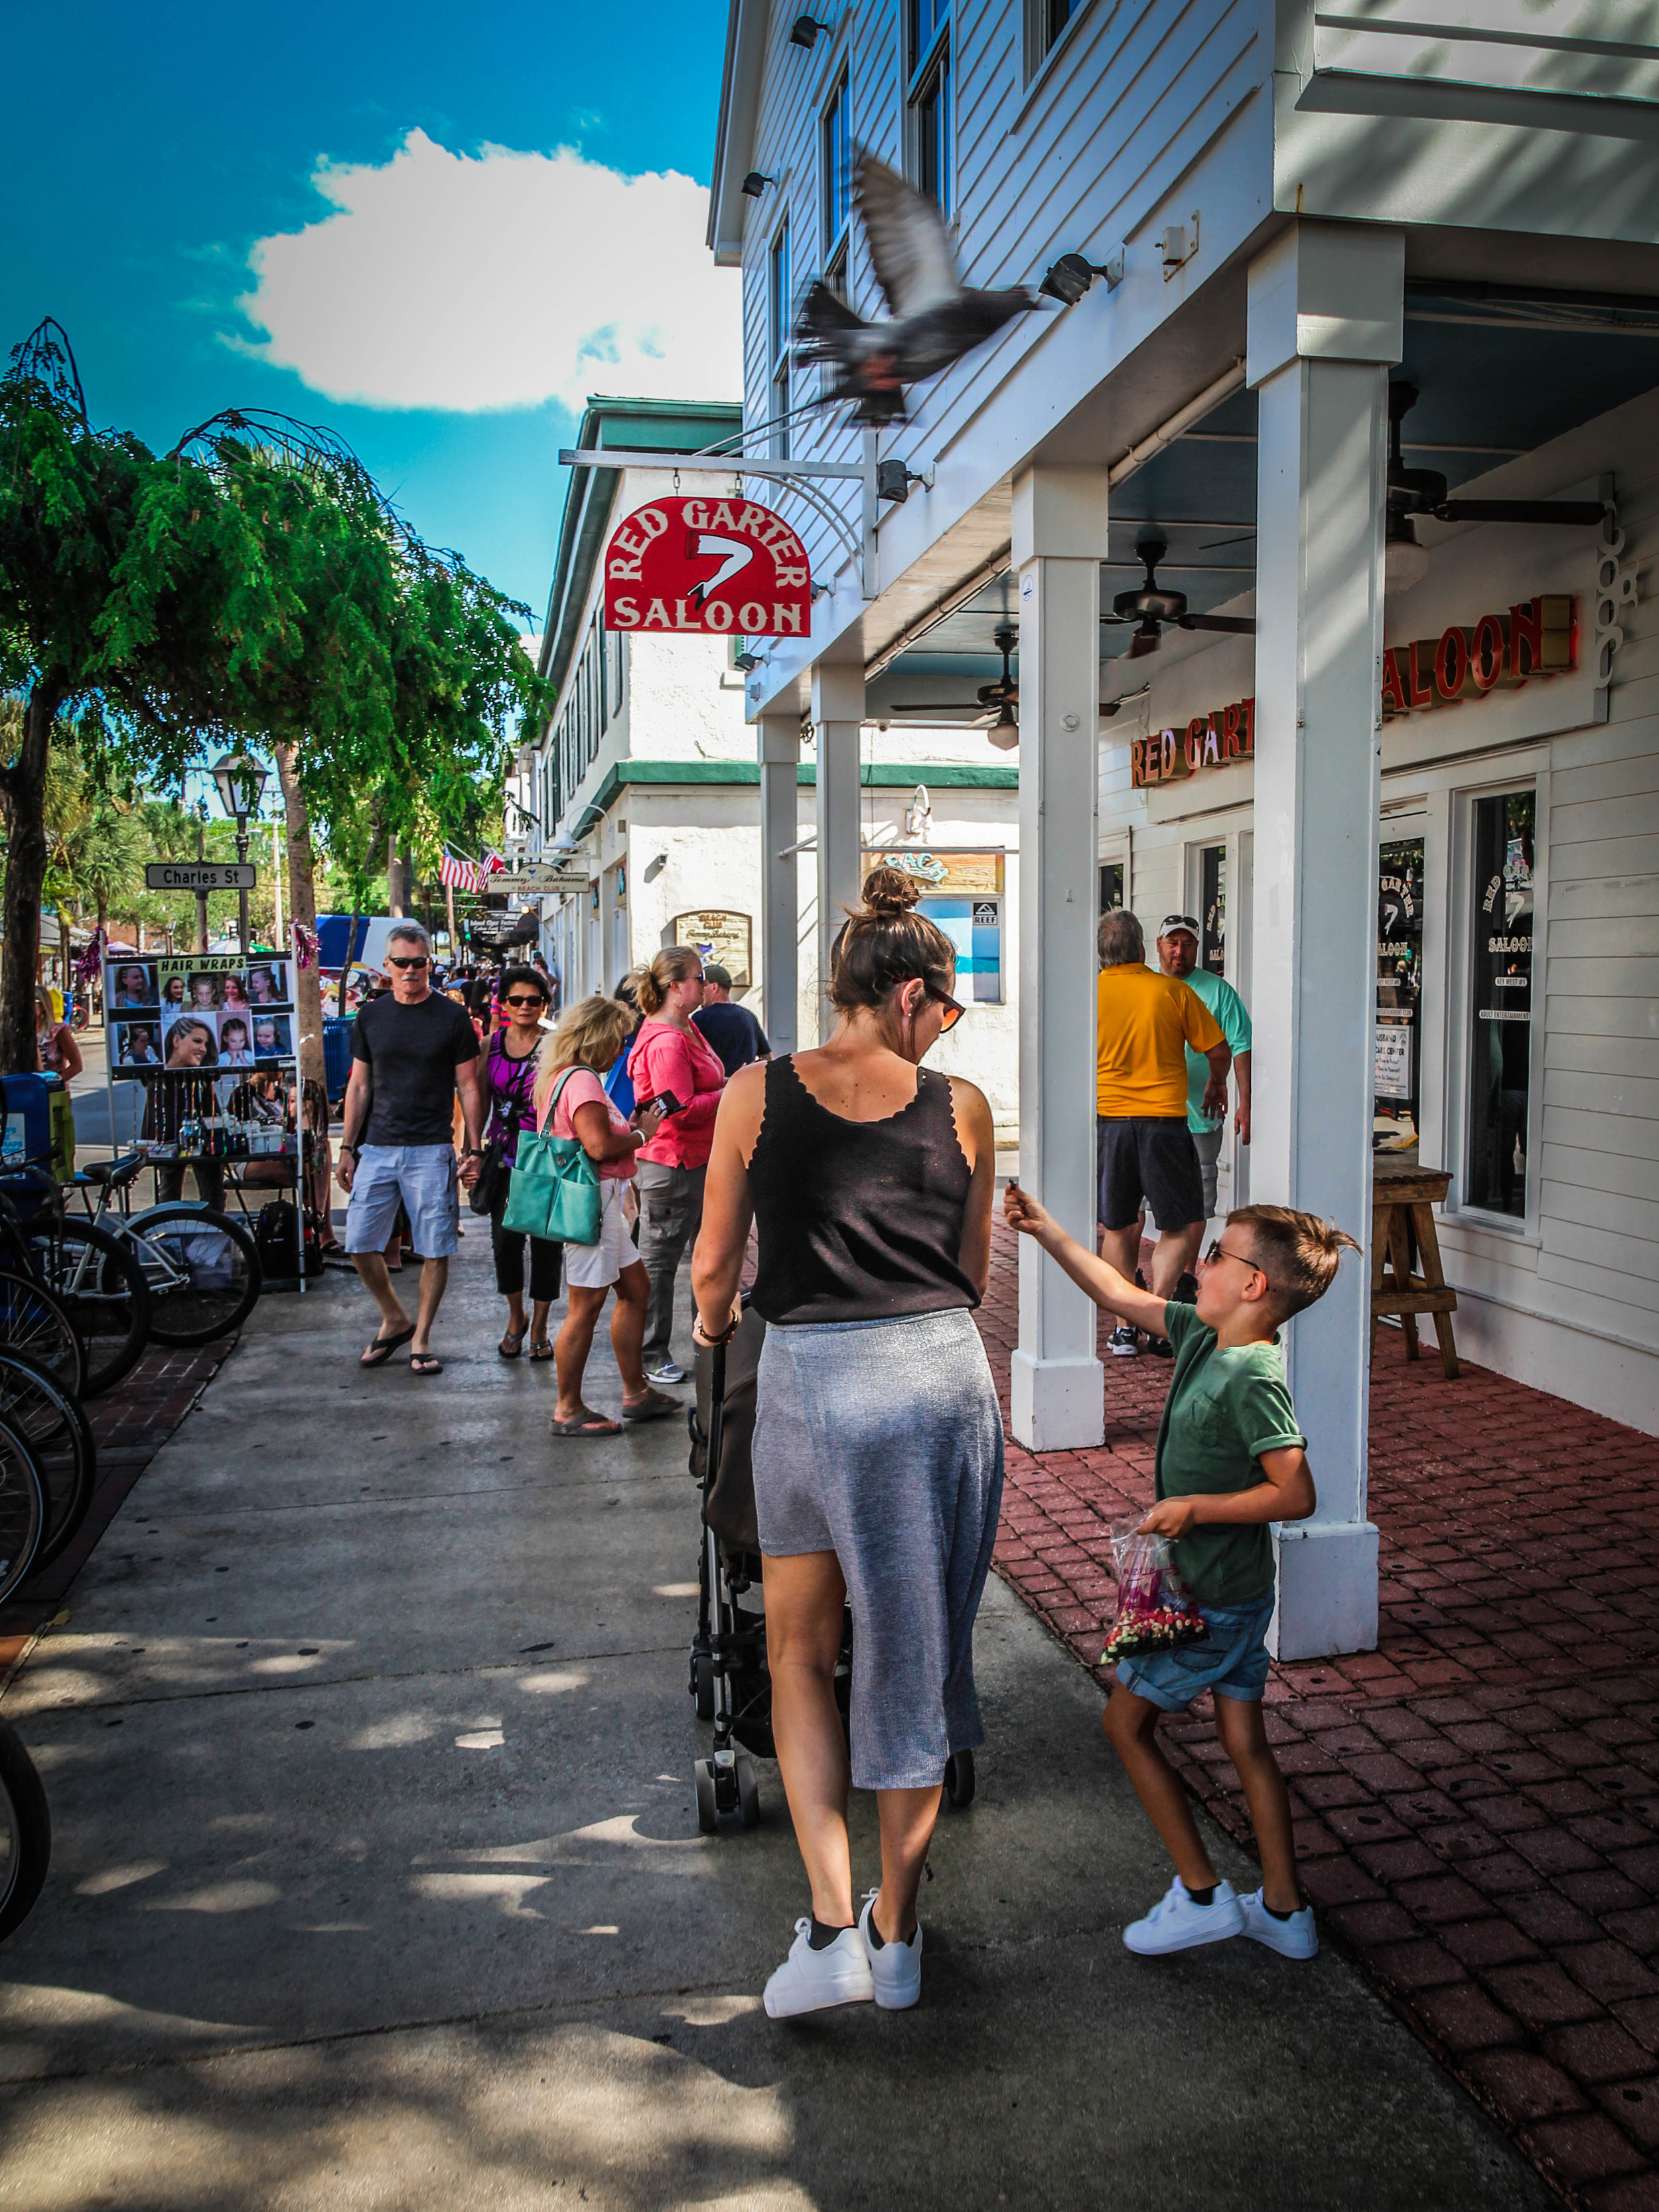 Florida_keys-_Key_west_To_do_reizen_met_kinderen-19.jpg